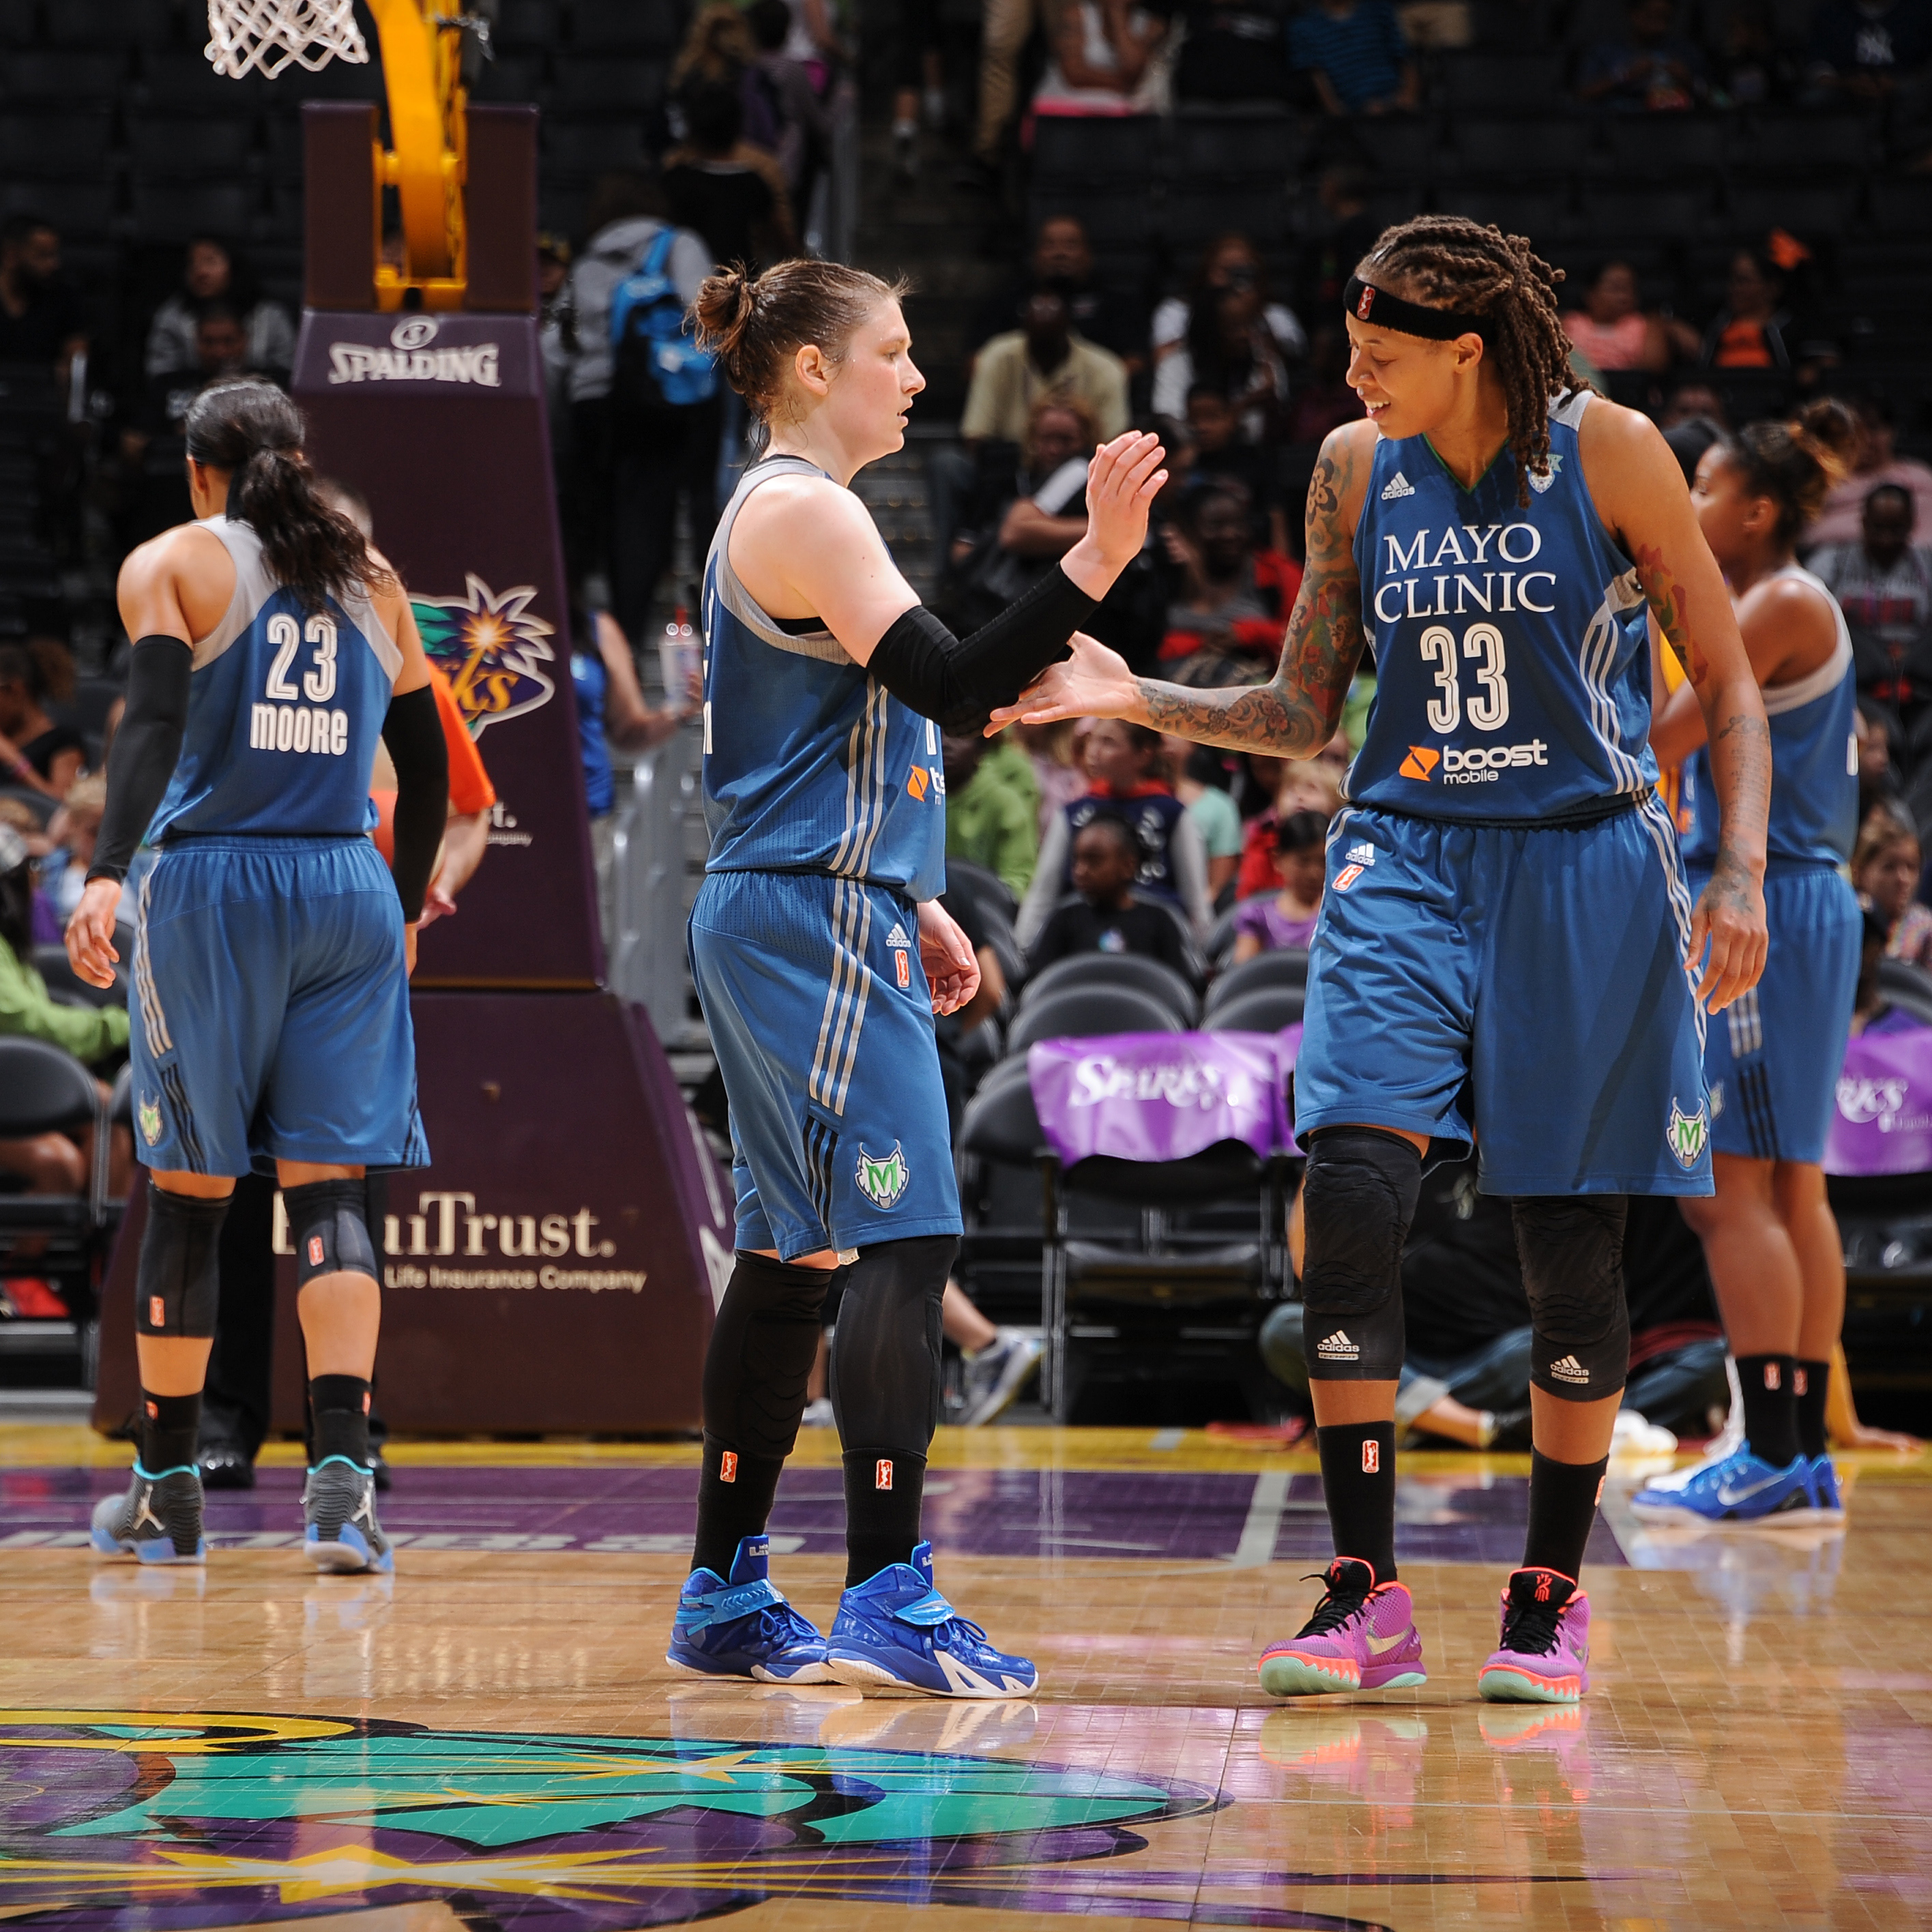 Lynx guards Lindsay Whalen and Seimone Augustus had reason to celebrate on Tuesday night after beating the Los Angeles Sparks 67-52 and running the Lnx record to 4-1 on the season.